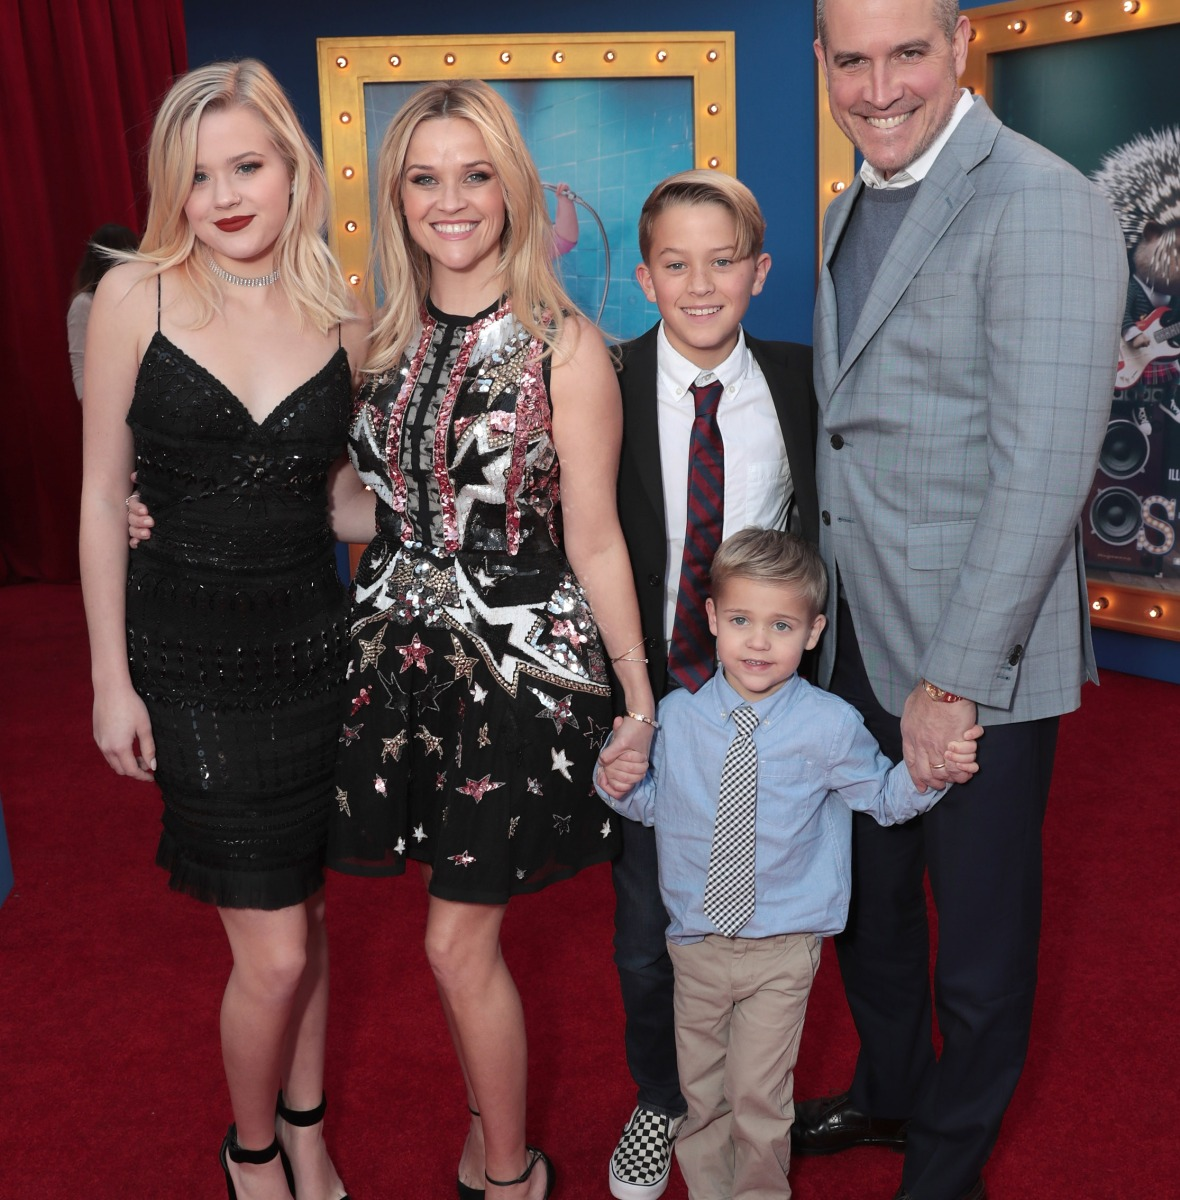 reese witherspoon family getty images